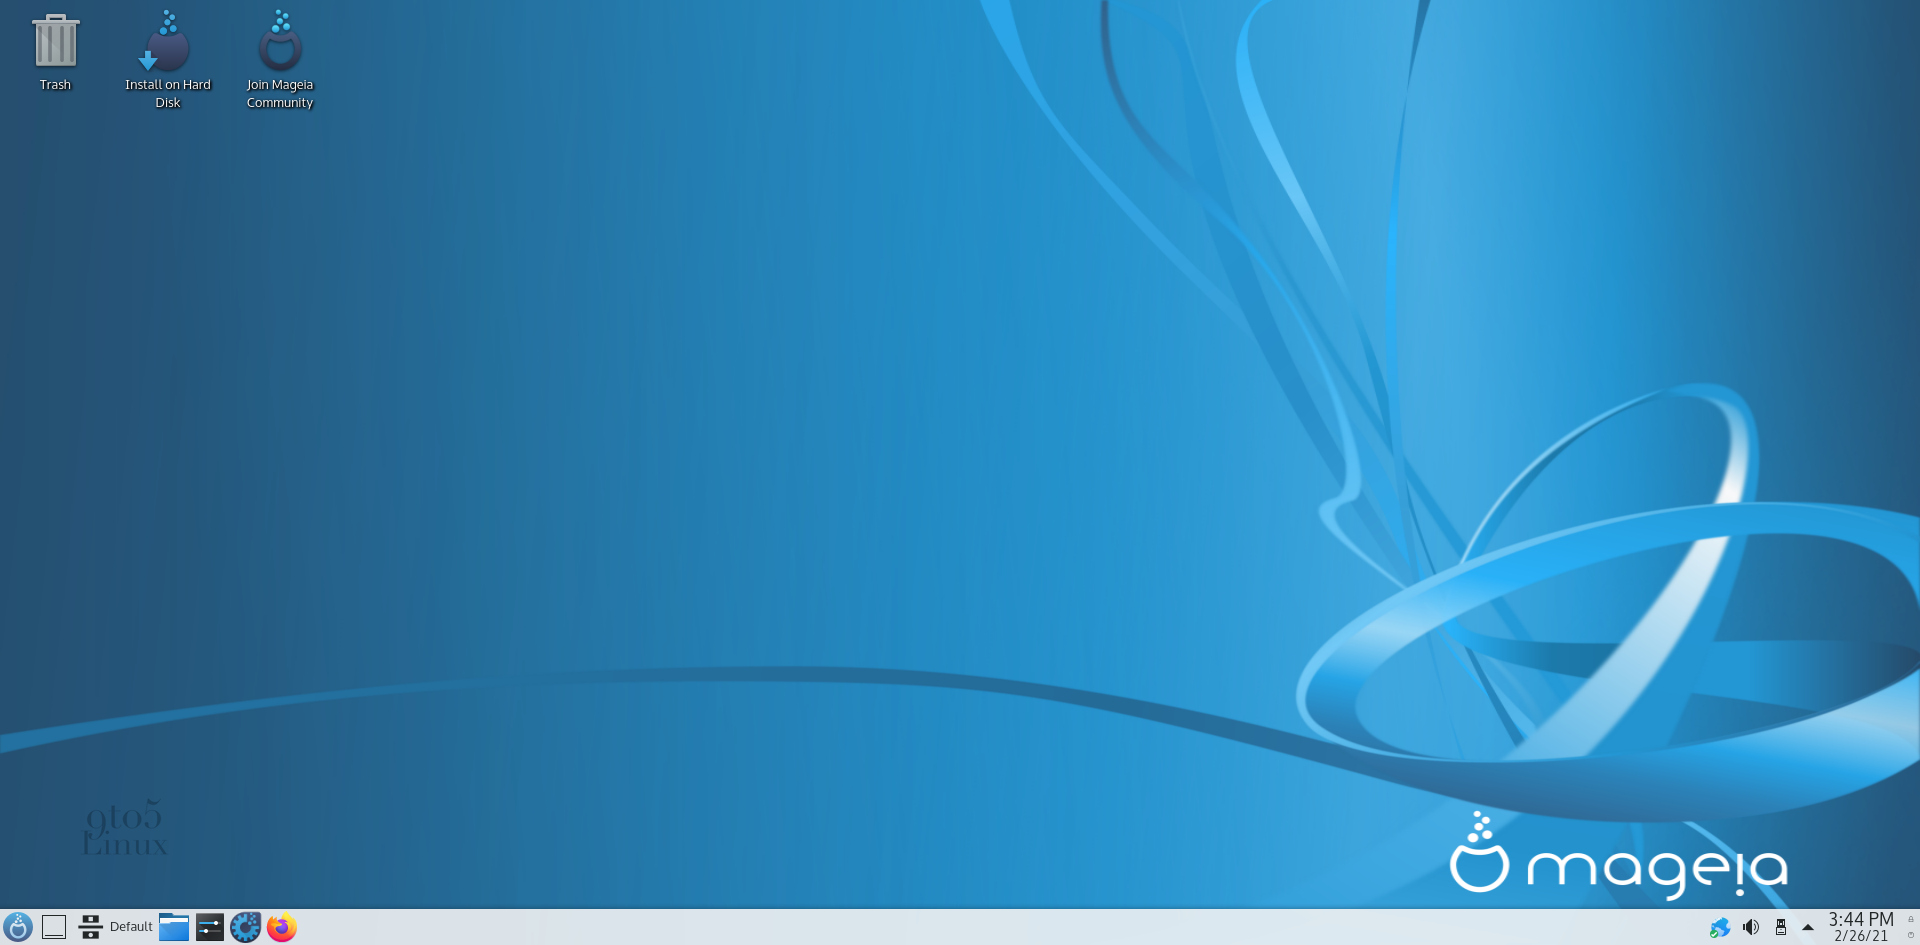 Mageia 8 Released with Linux 5.10 LTS, Better Support for NVIDIA Optimus Laptops - 9to5Linux